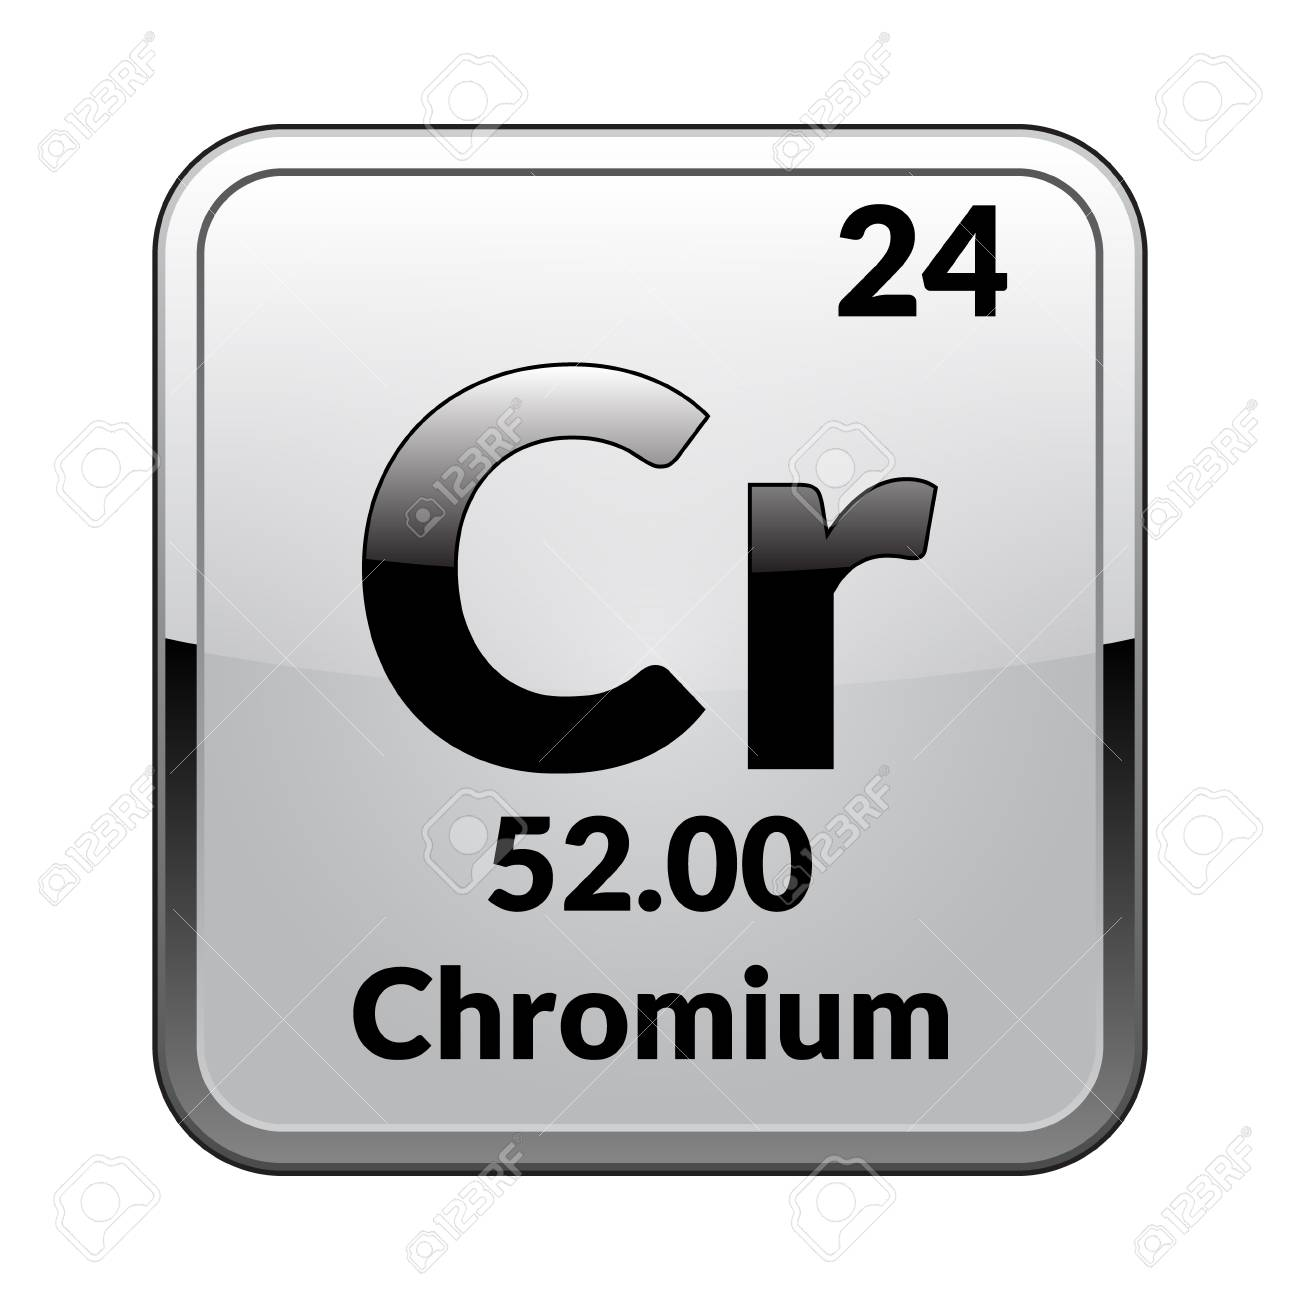 Chromium Symbolemical Element Of The Periodic Table On A Glossy